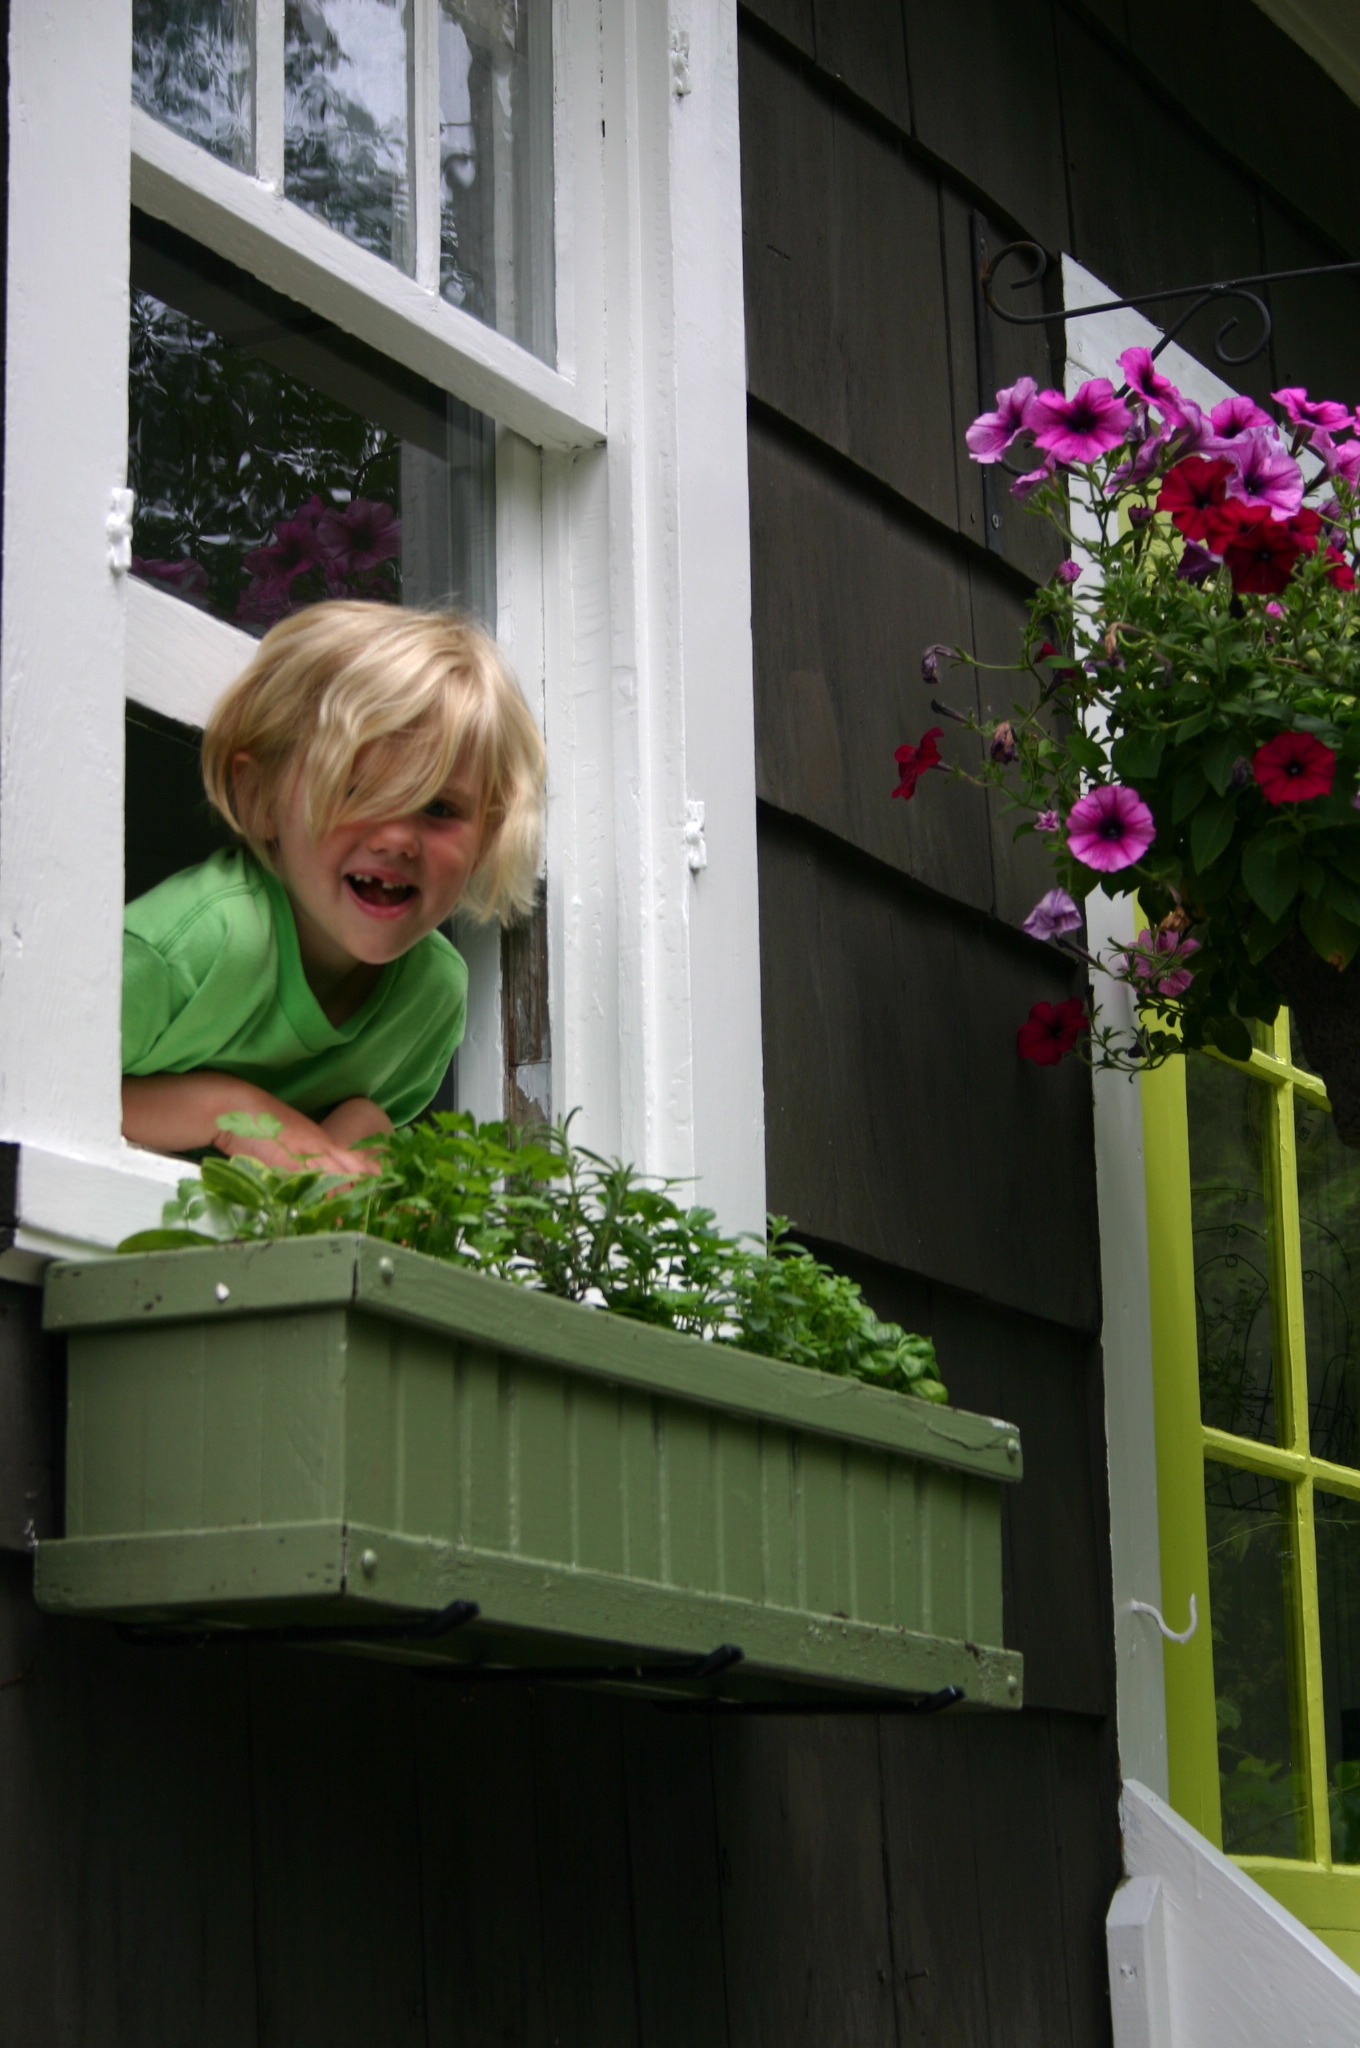 You Ll Need A Sunny Window Pack In As Many Plants Can And Your Box Will Be Overflowing With An Abundance Of Flavorful Herbs